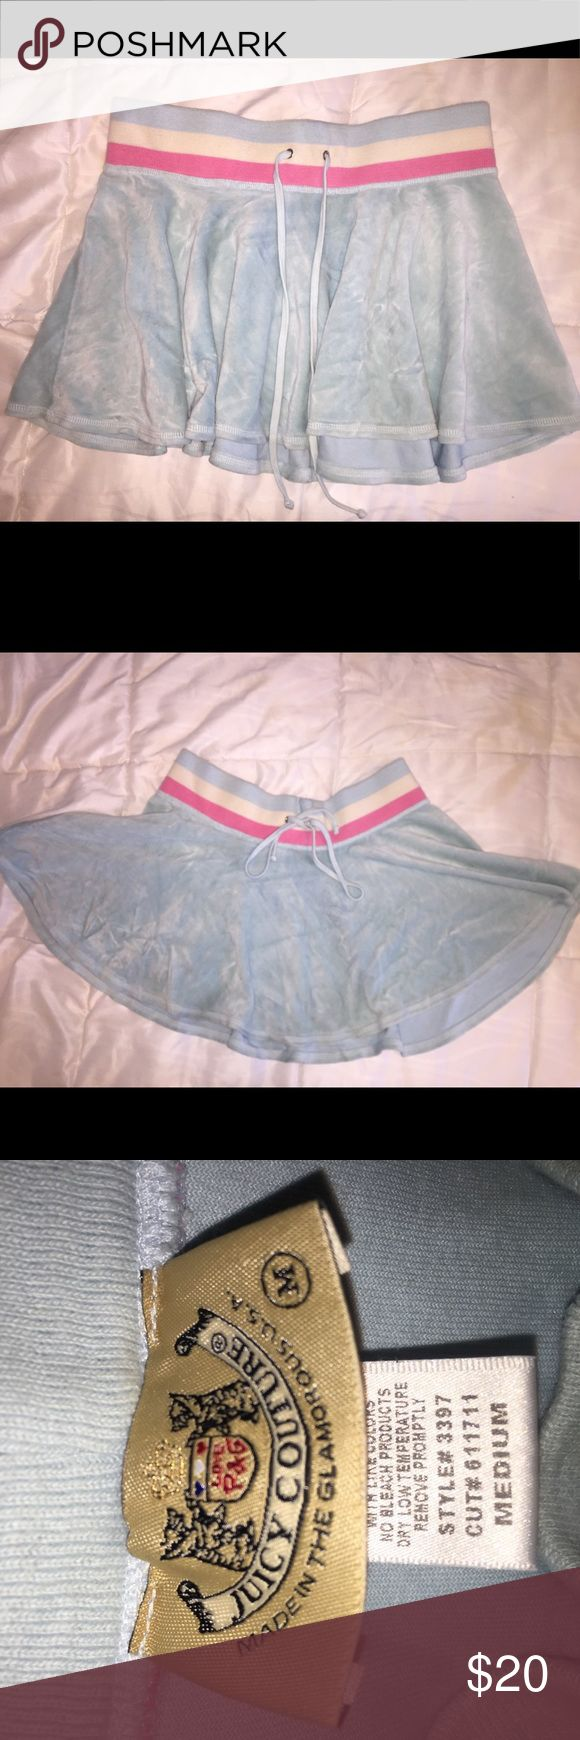 JUICY COUTURE VELOUR SKIRT Because every girl needs a Juicy skirt. Juicy Couture Skirts Mini